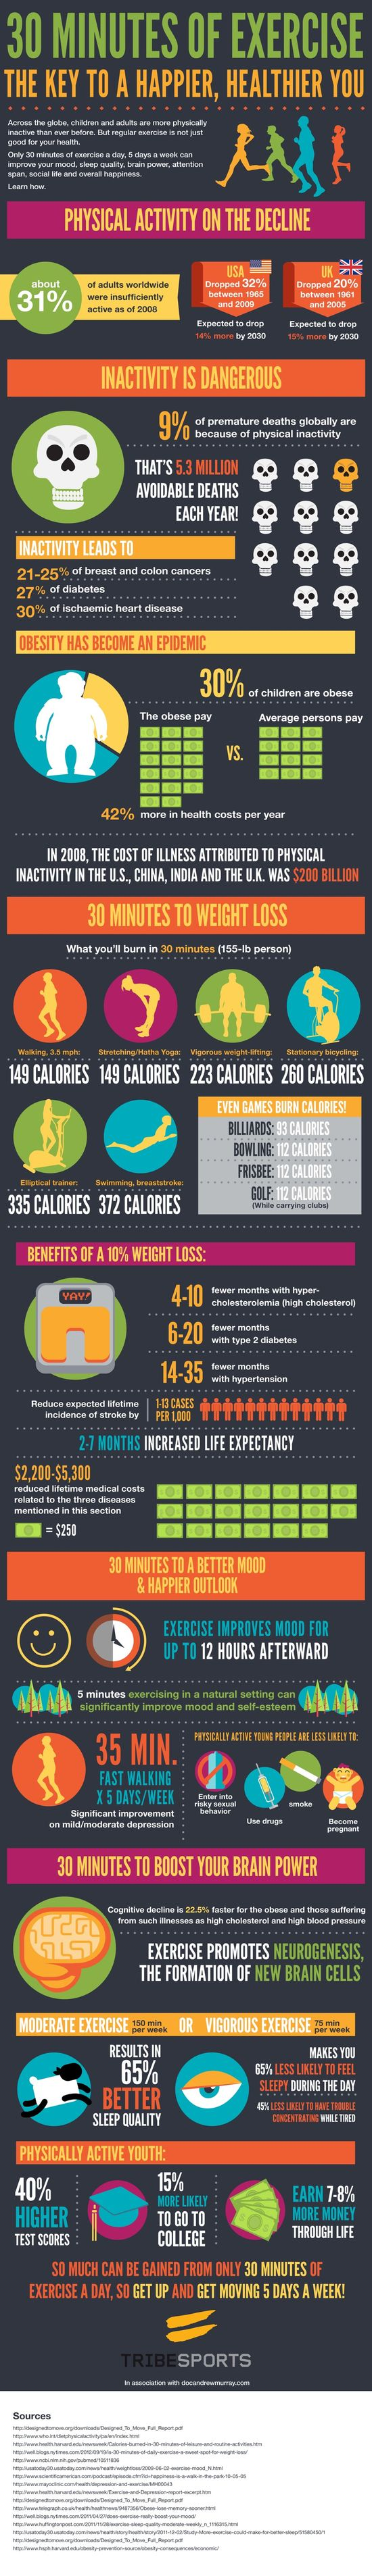 30-minutes-to-a-longer-life-how-exercise-reduces-your-risk-of-premature-death_50bdce182cb4c.jpg (900×6241)